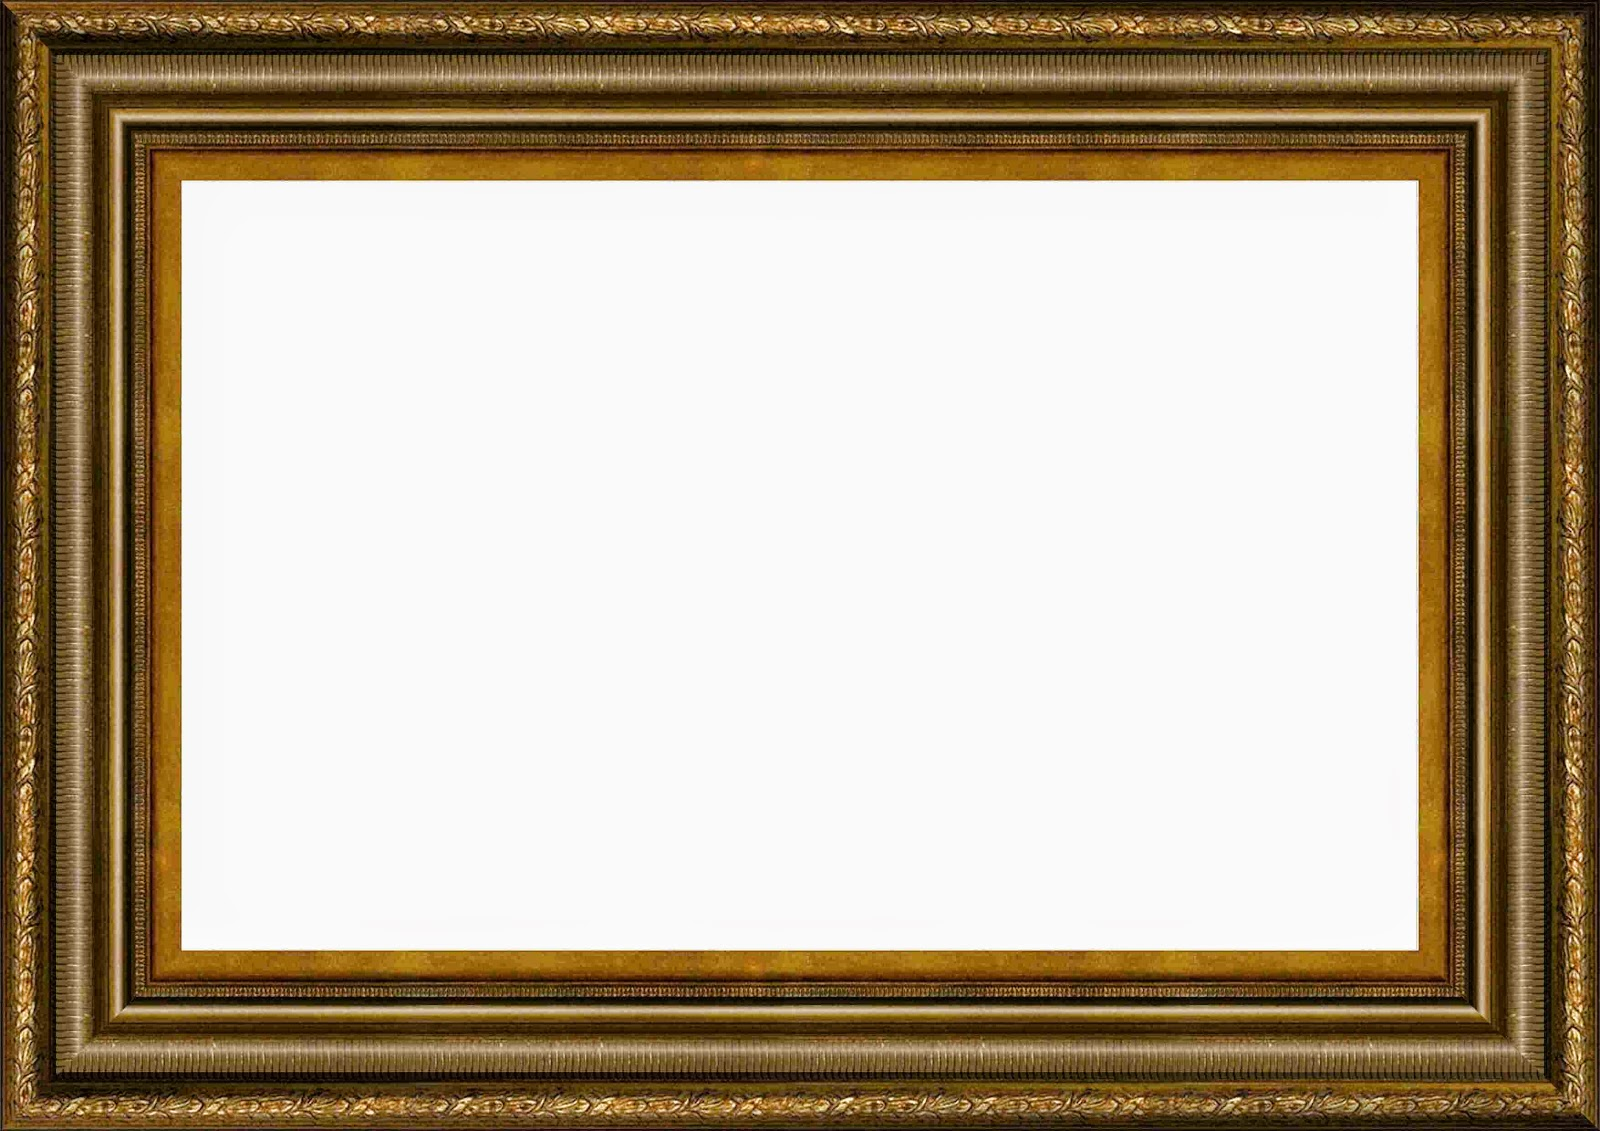 metallic wooden frame rough wooden frame wooden frame high resolution